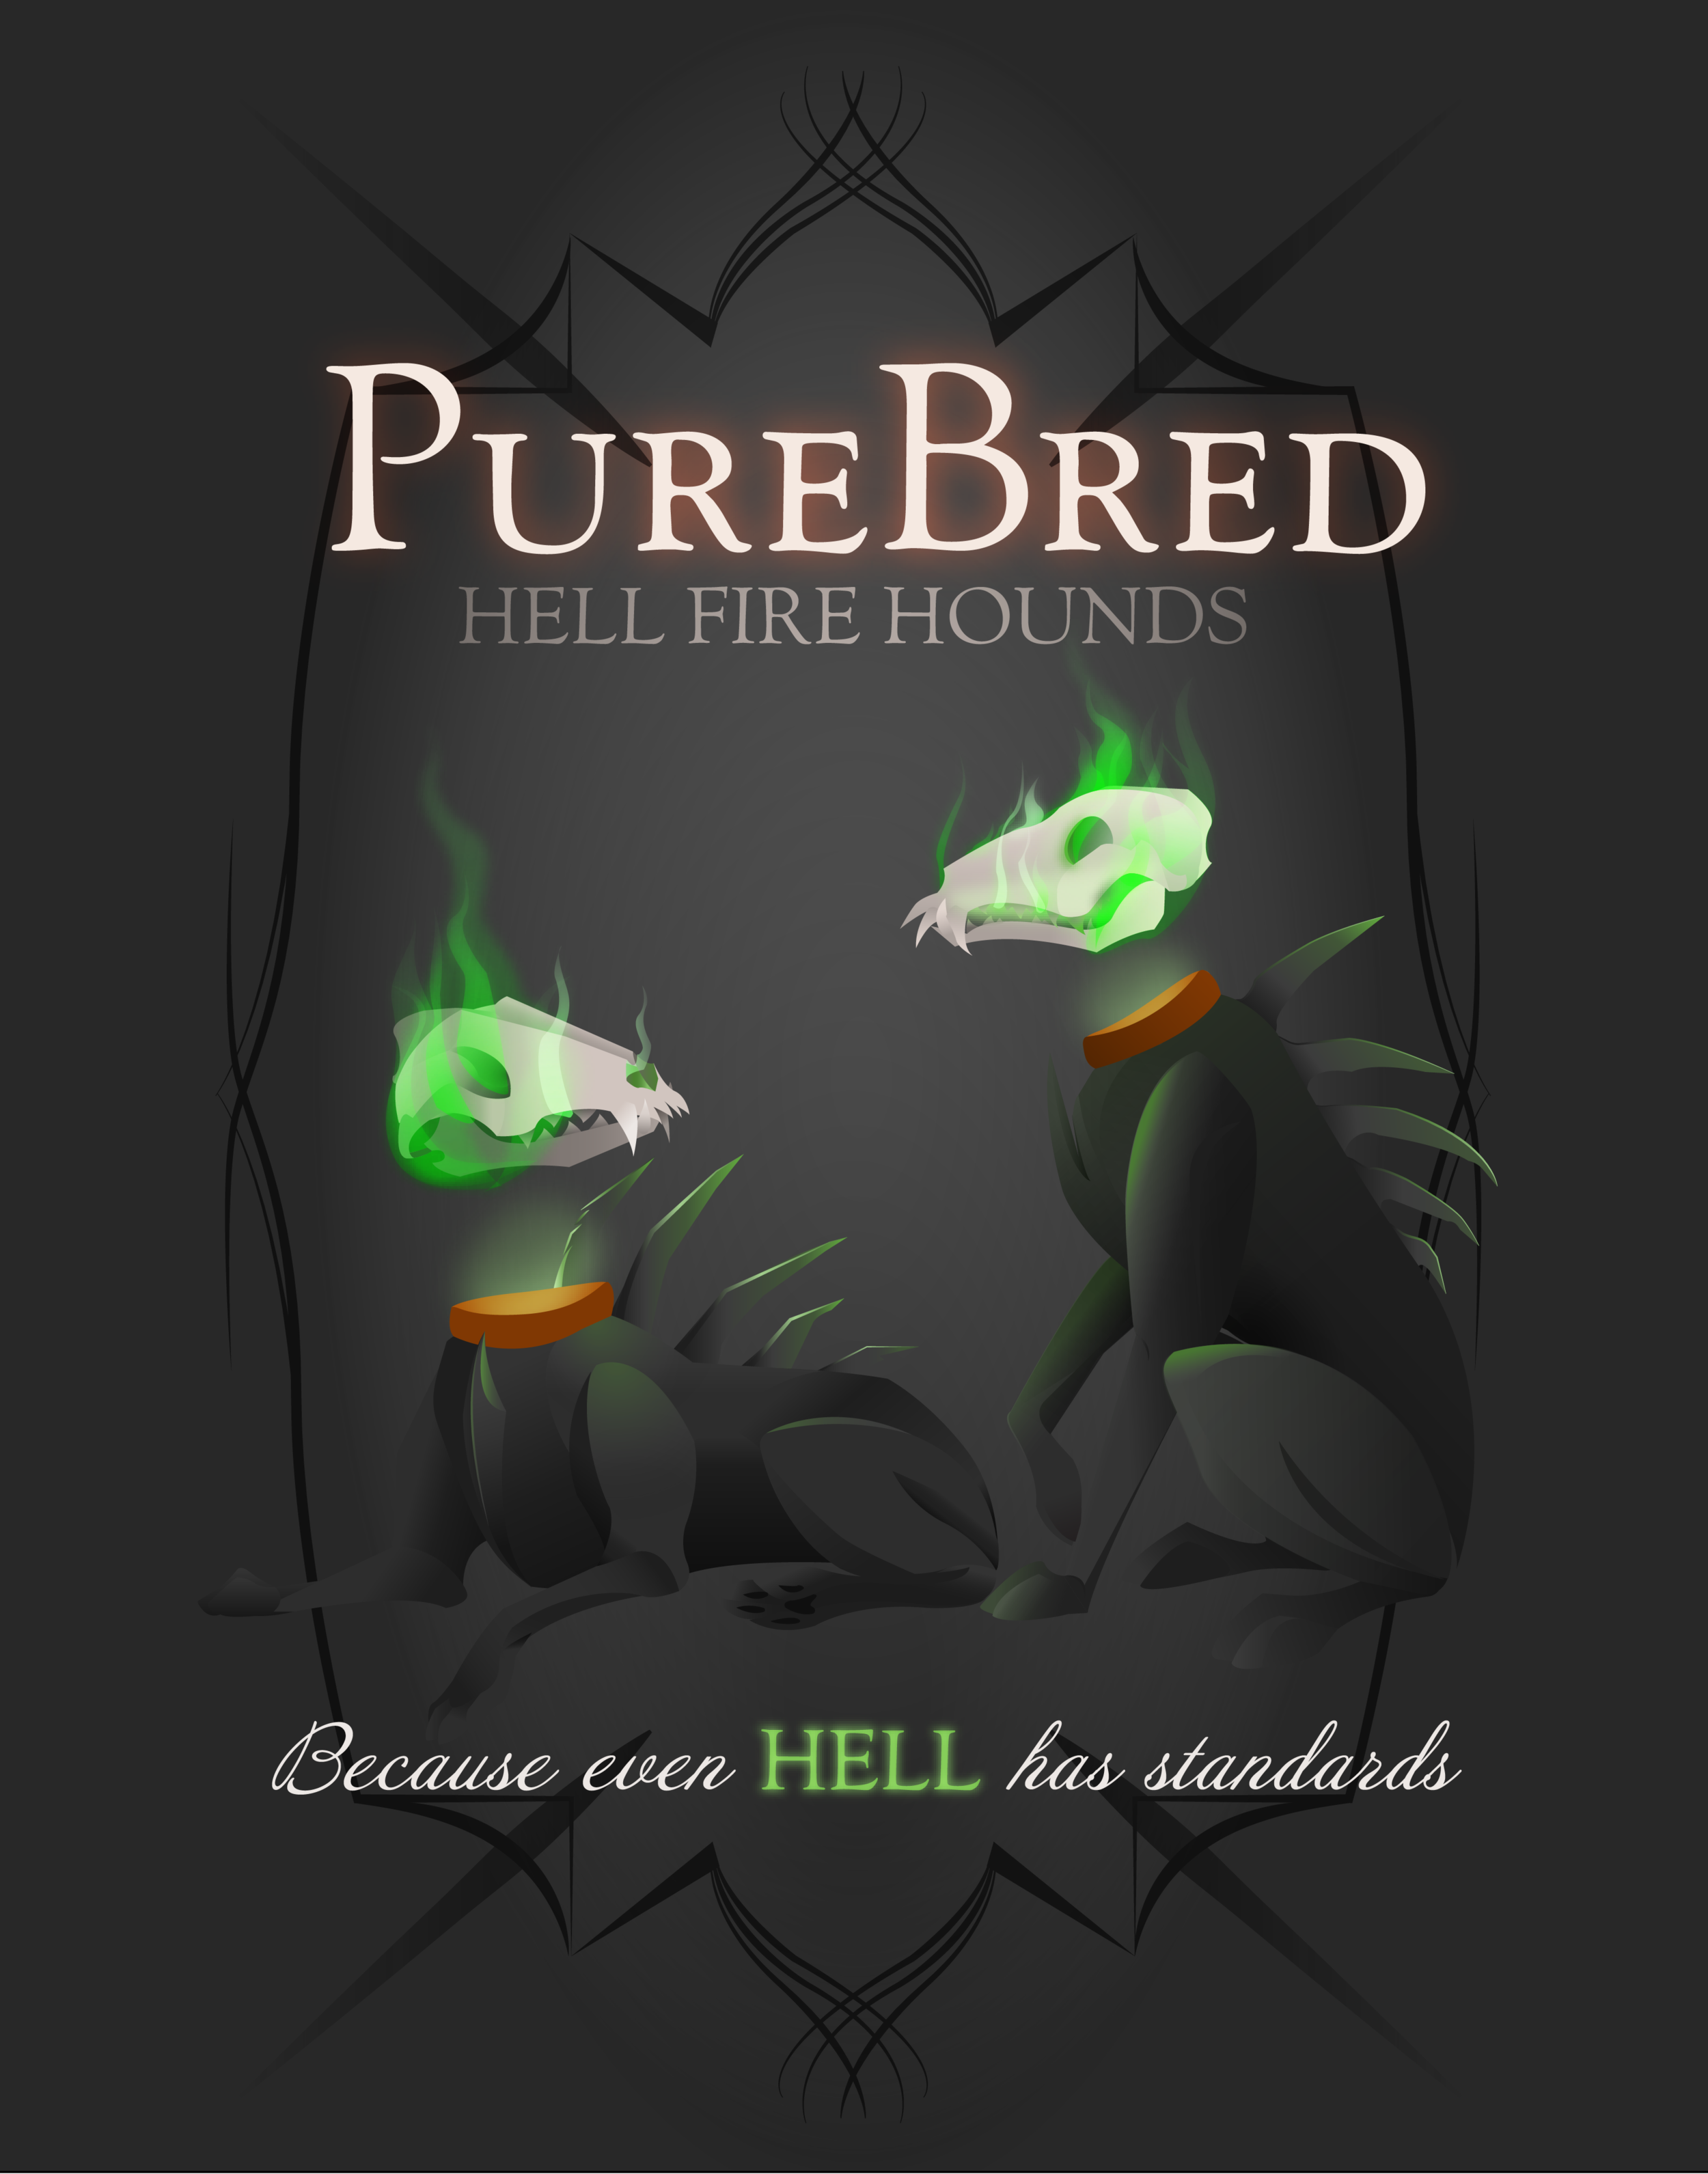 Purebred Hell hounds